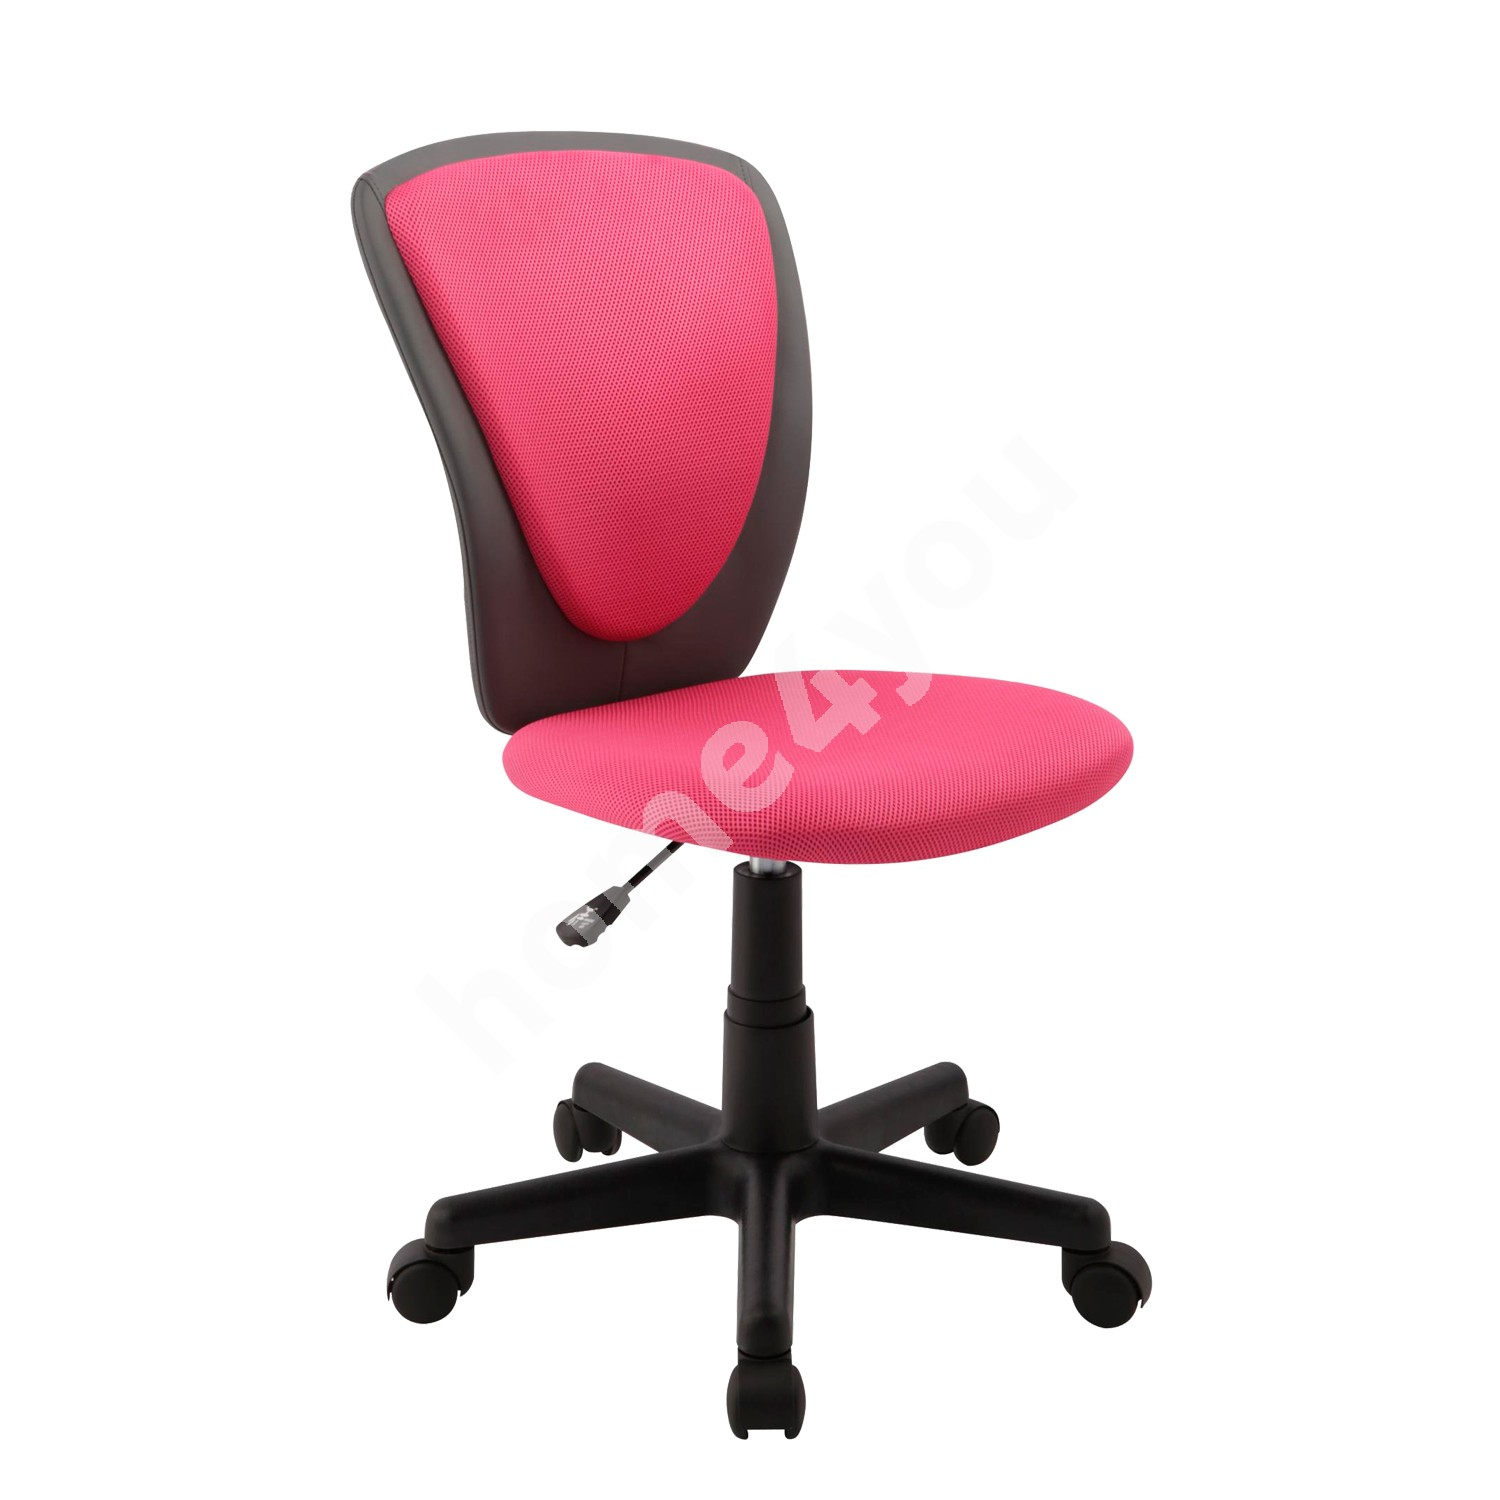 Task chair BIANCA 42x51xH82-94cm, seat and back rest: mesh fabric / imitation leather, color: pink - dark grey